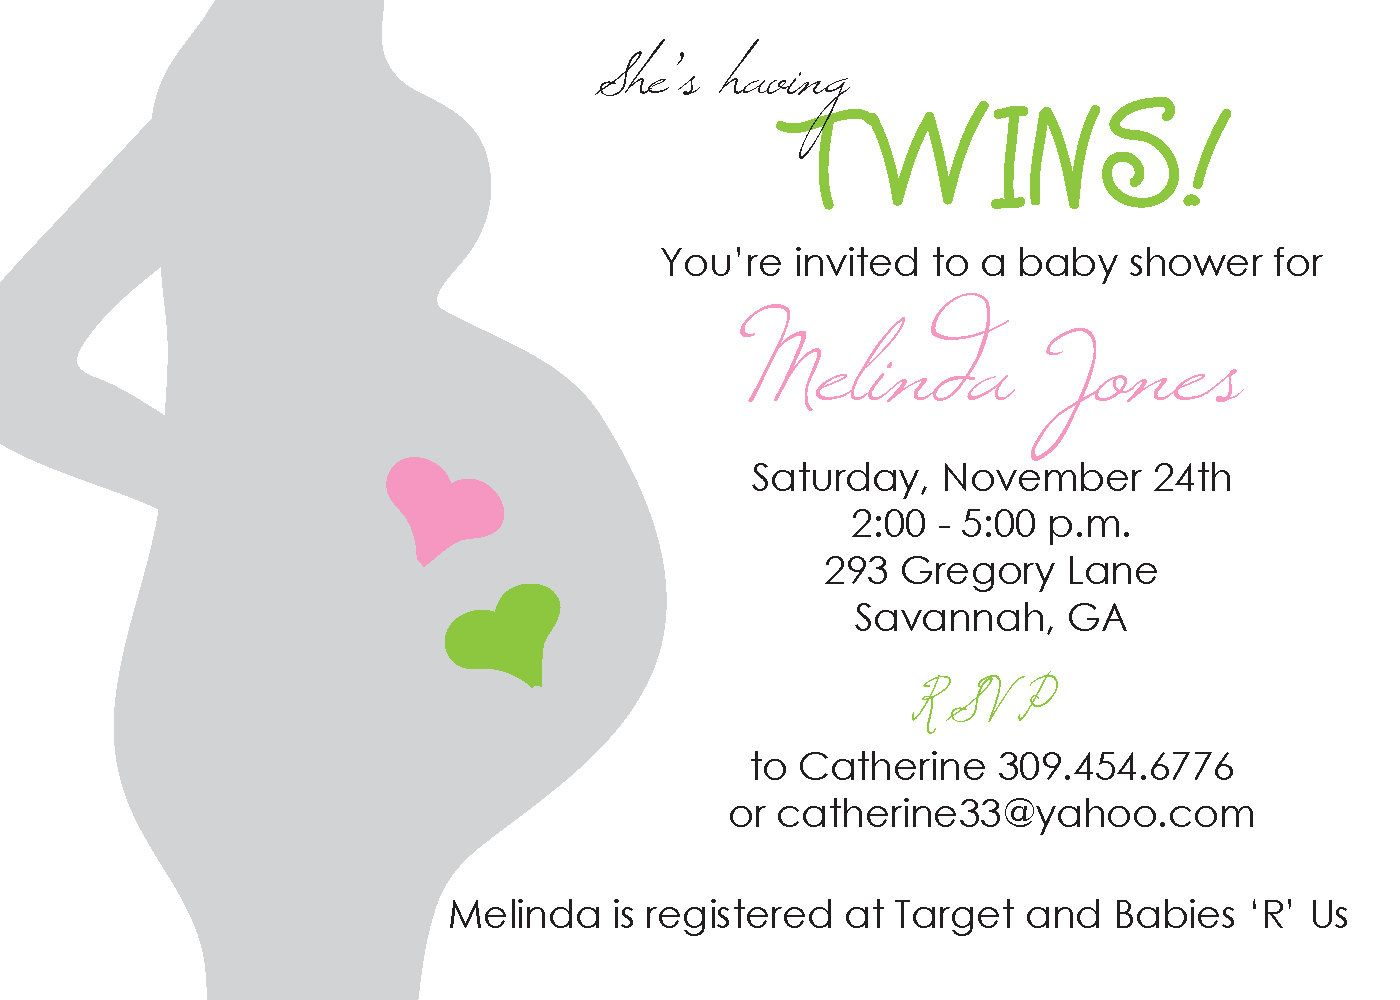 Twins baby shower invitation   Shower invitations, Twins and Babies